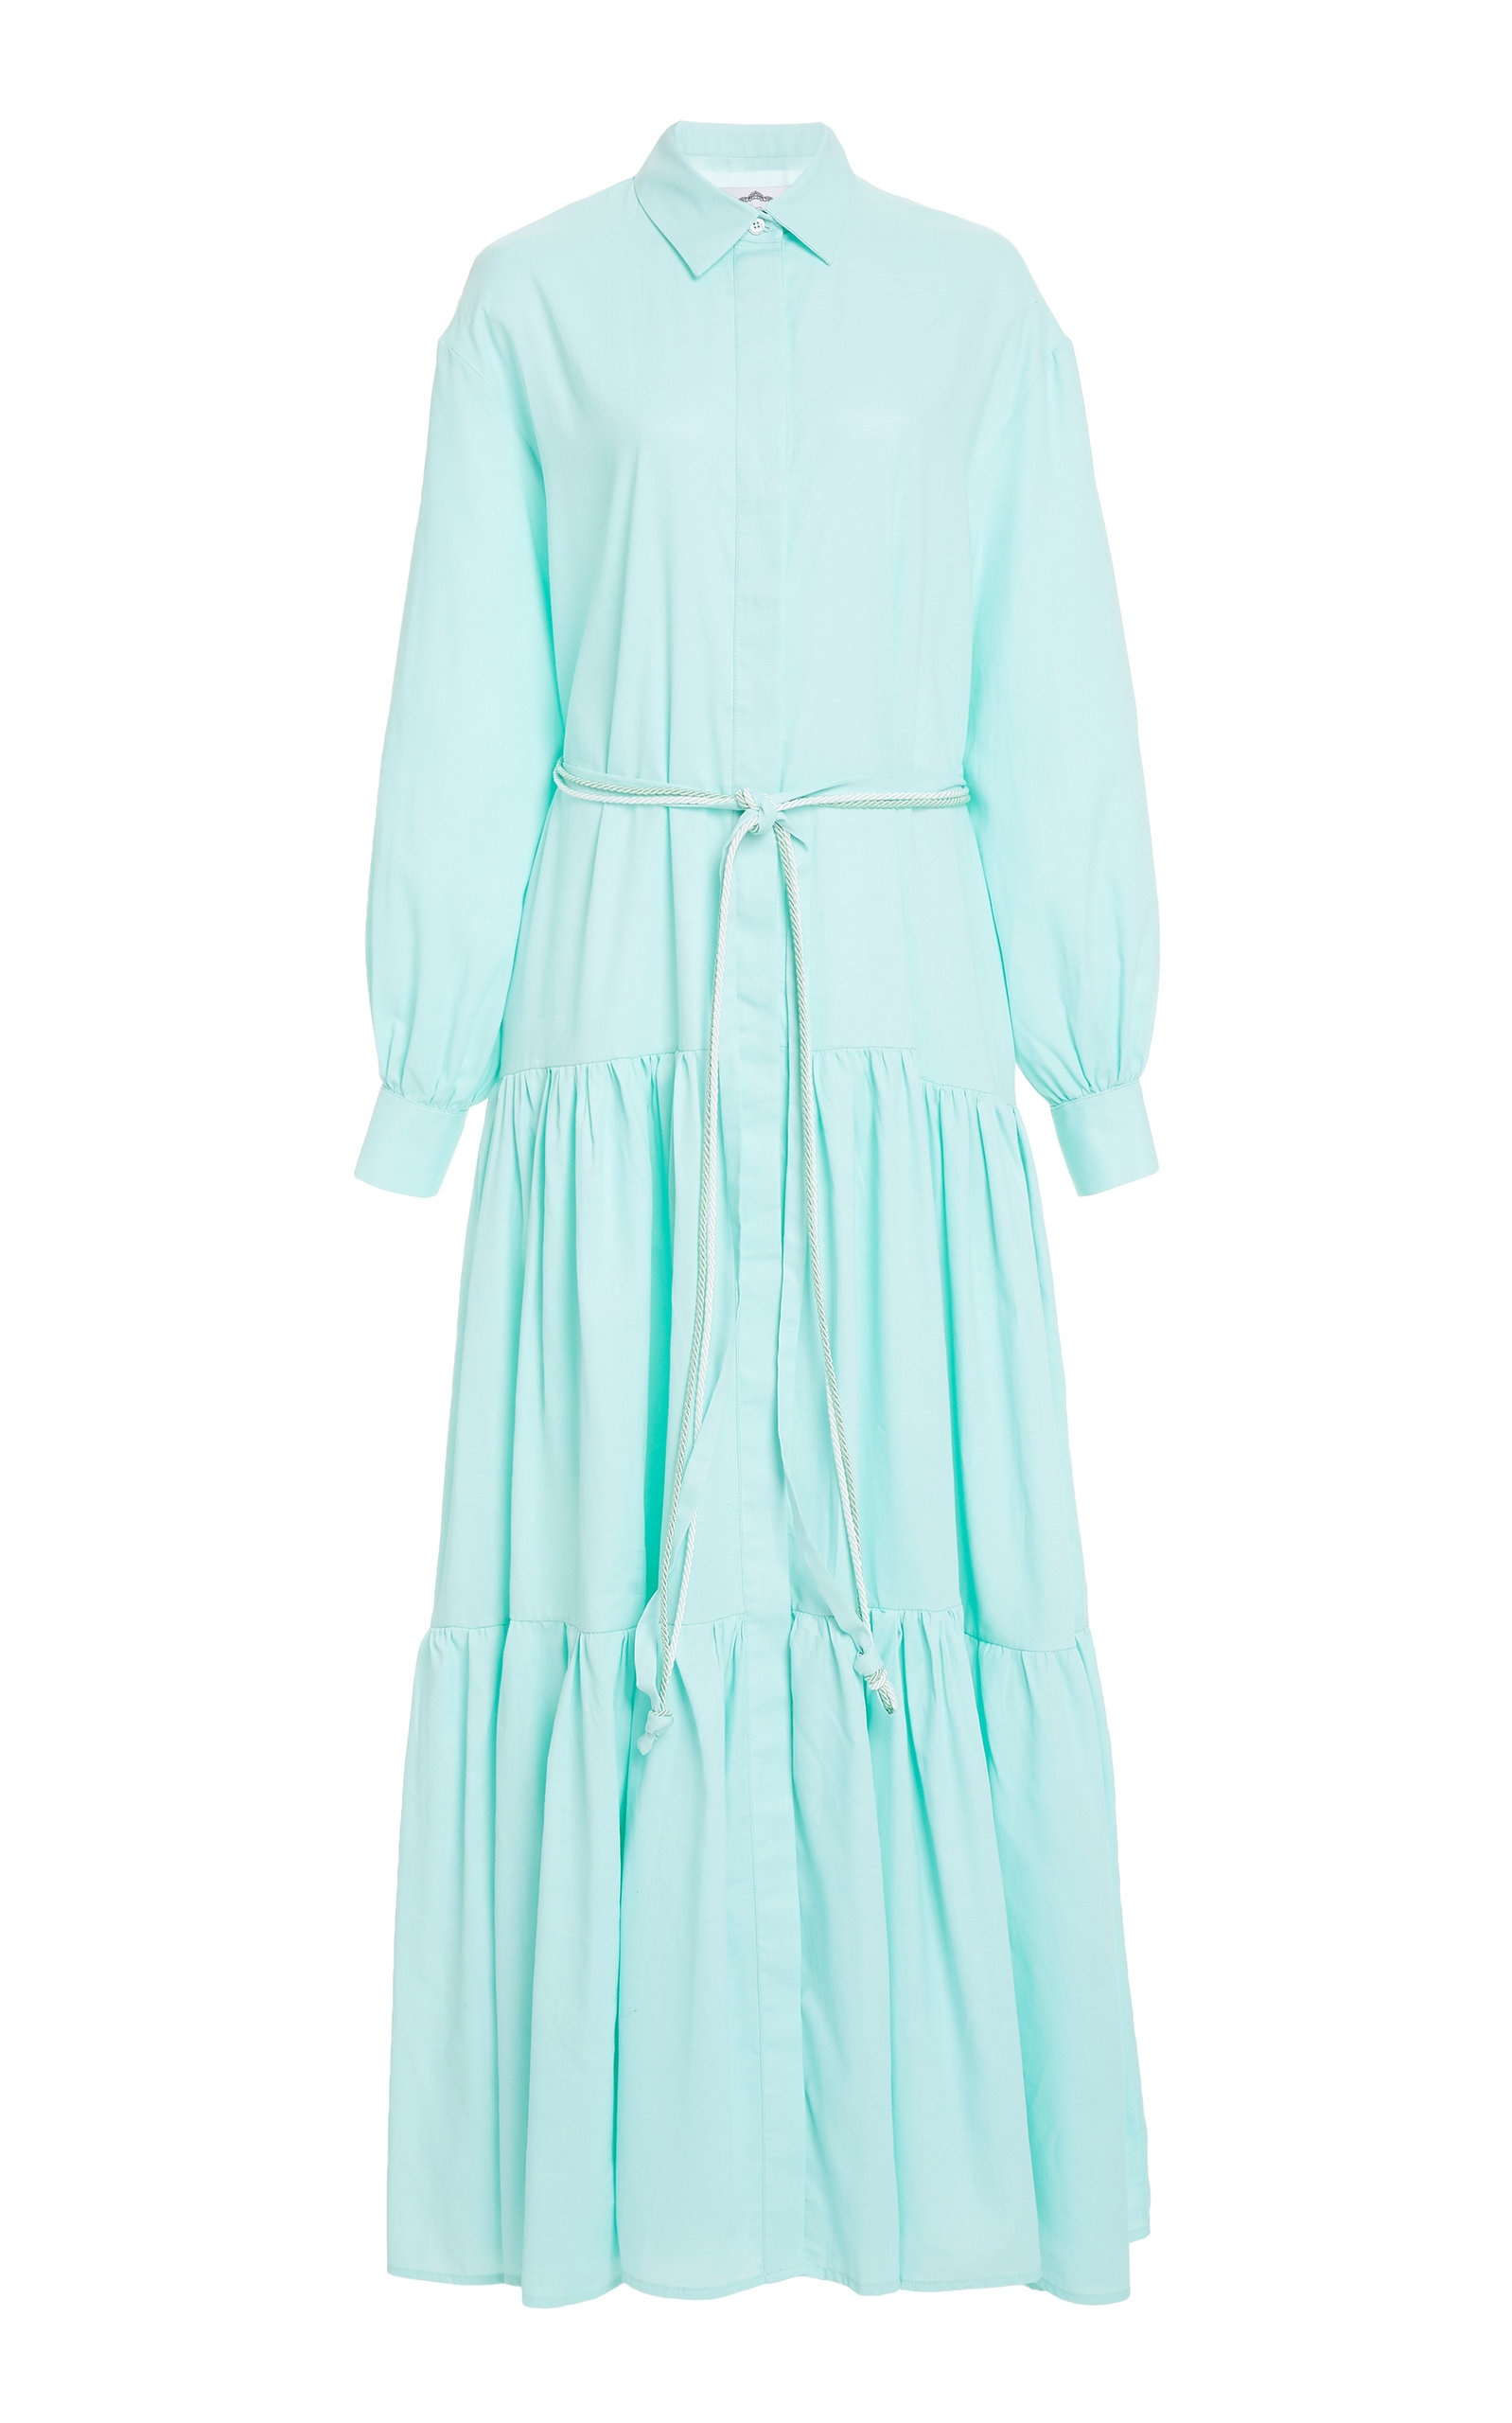 Buy Evi Grintela Brione Shirt Dress online, shop Evi Grintela at the best price